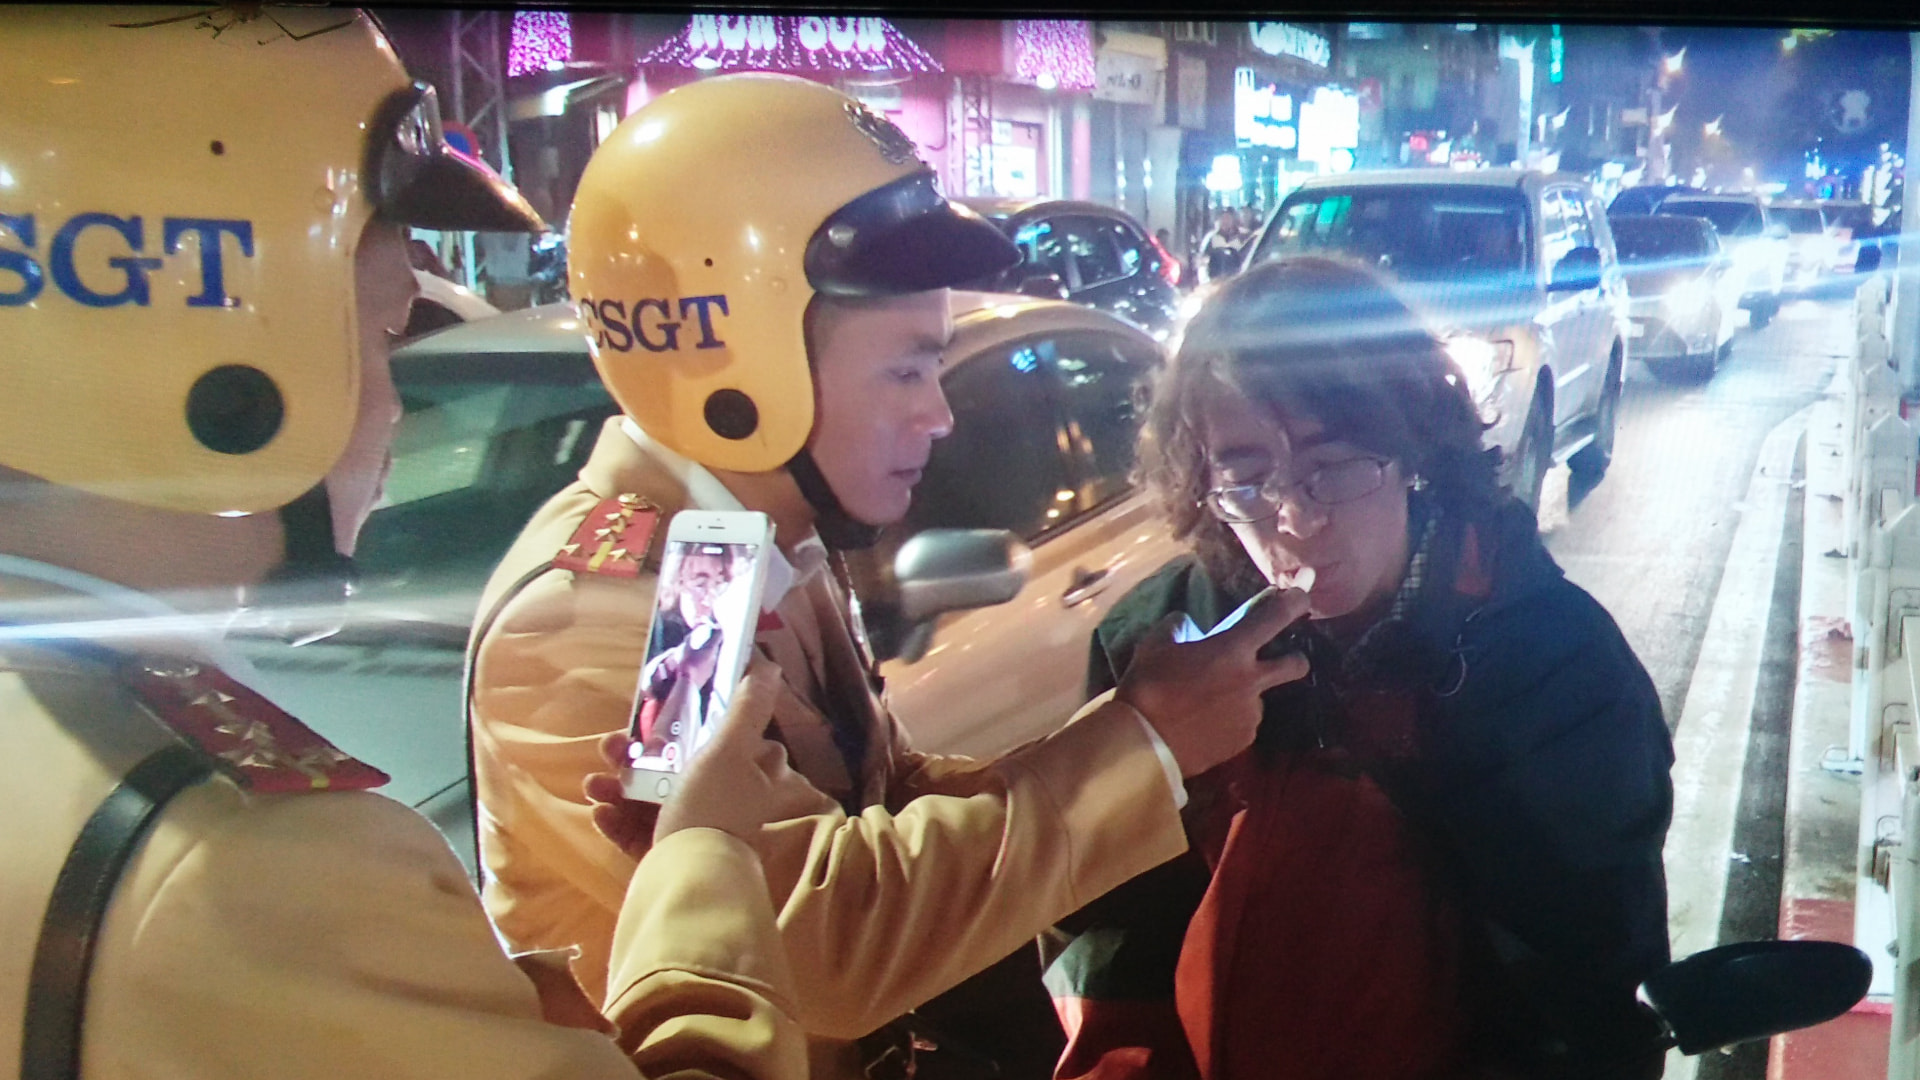 Russian Aleks Ivanov takes a breathalyzer test after being stopped by traffic police in Hanoi on January 7, 2020. Photo: Xuan Bui / Tuoi Tre